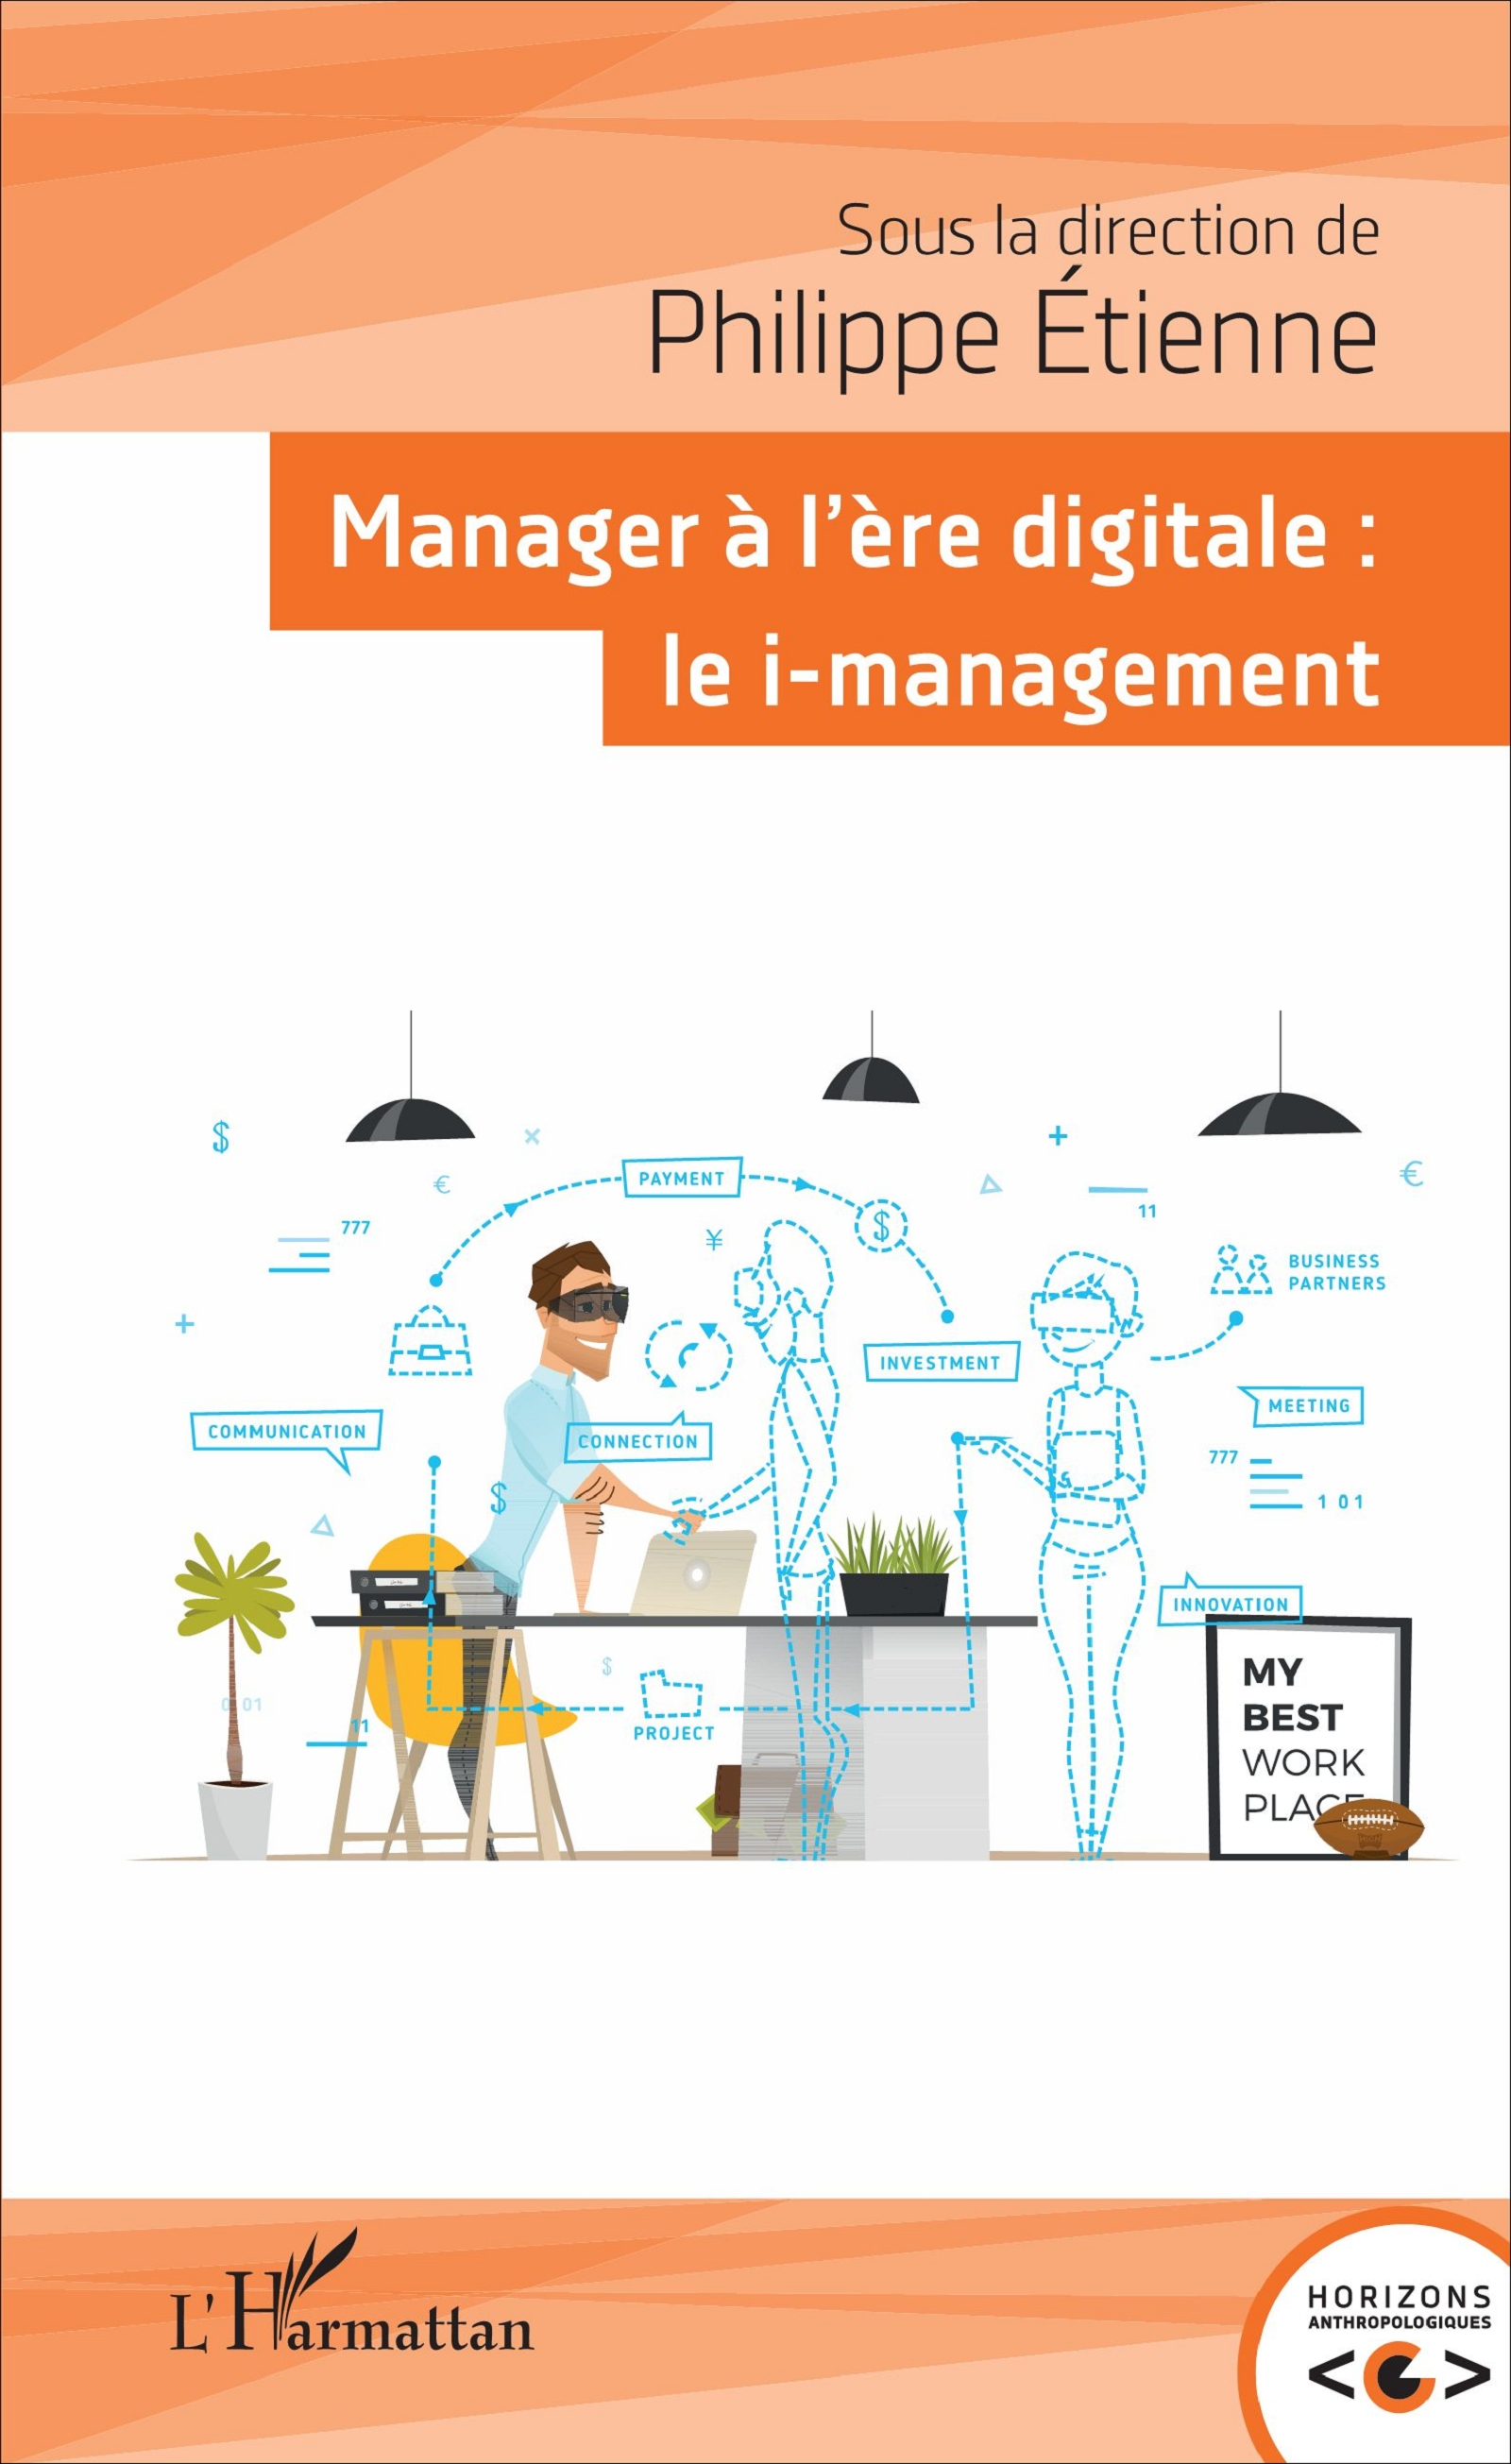 Manager à l'ère digitale